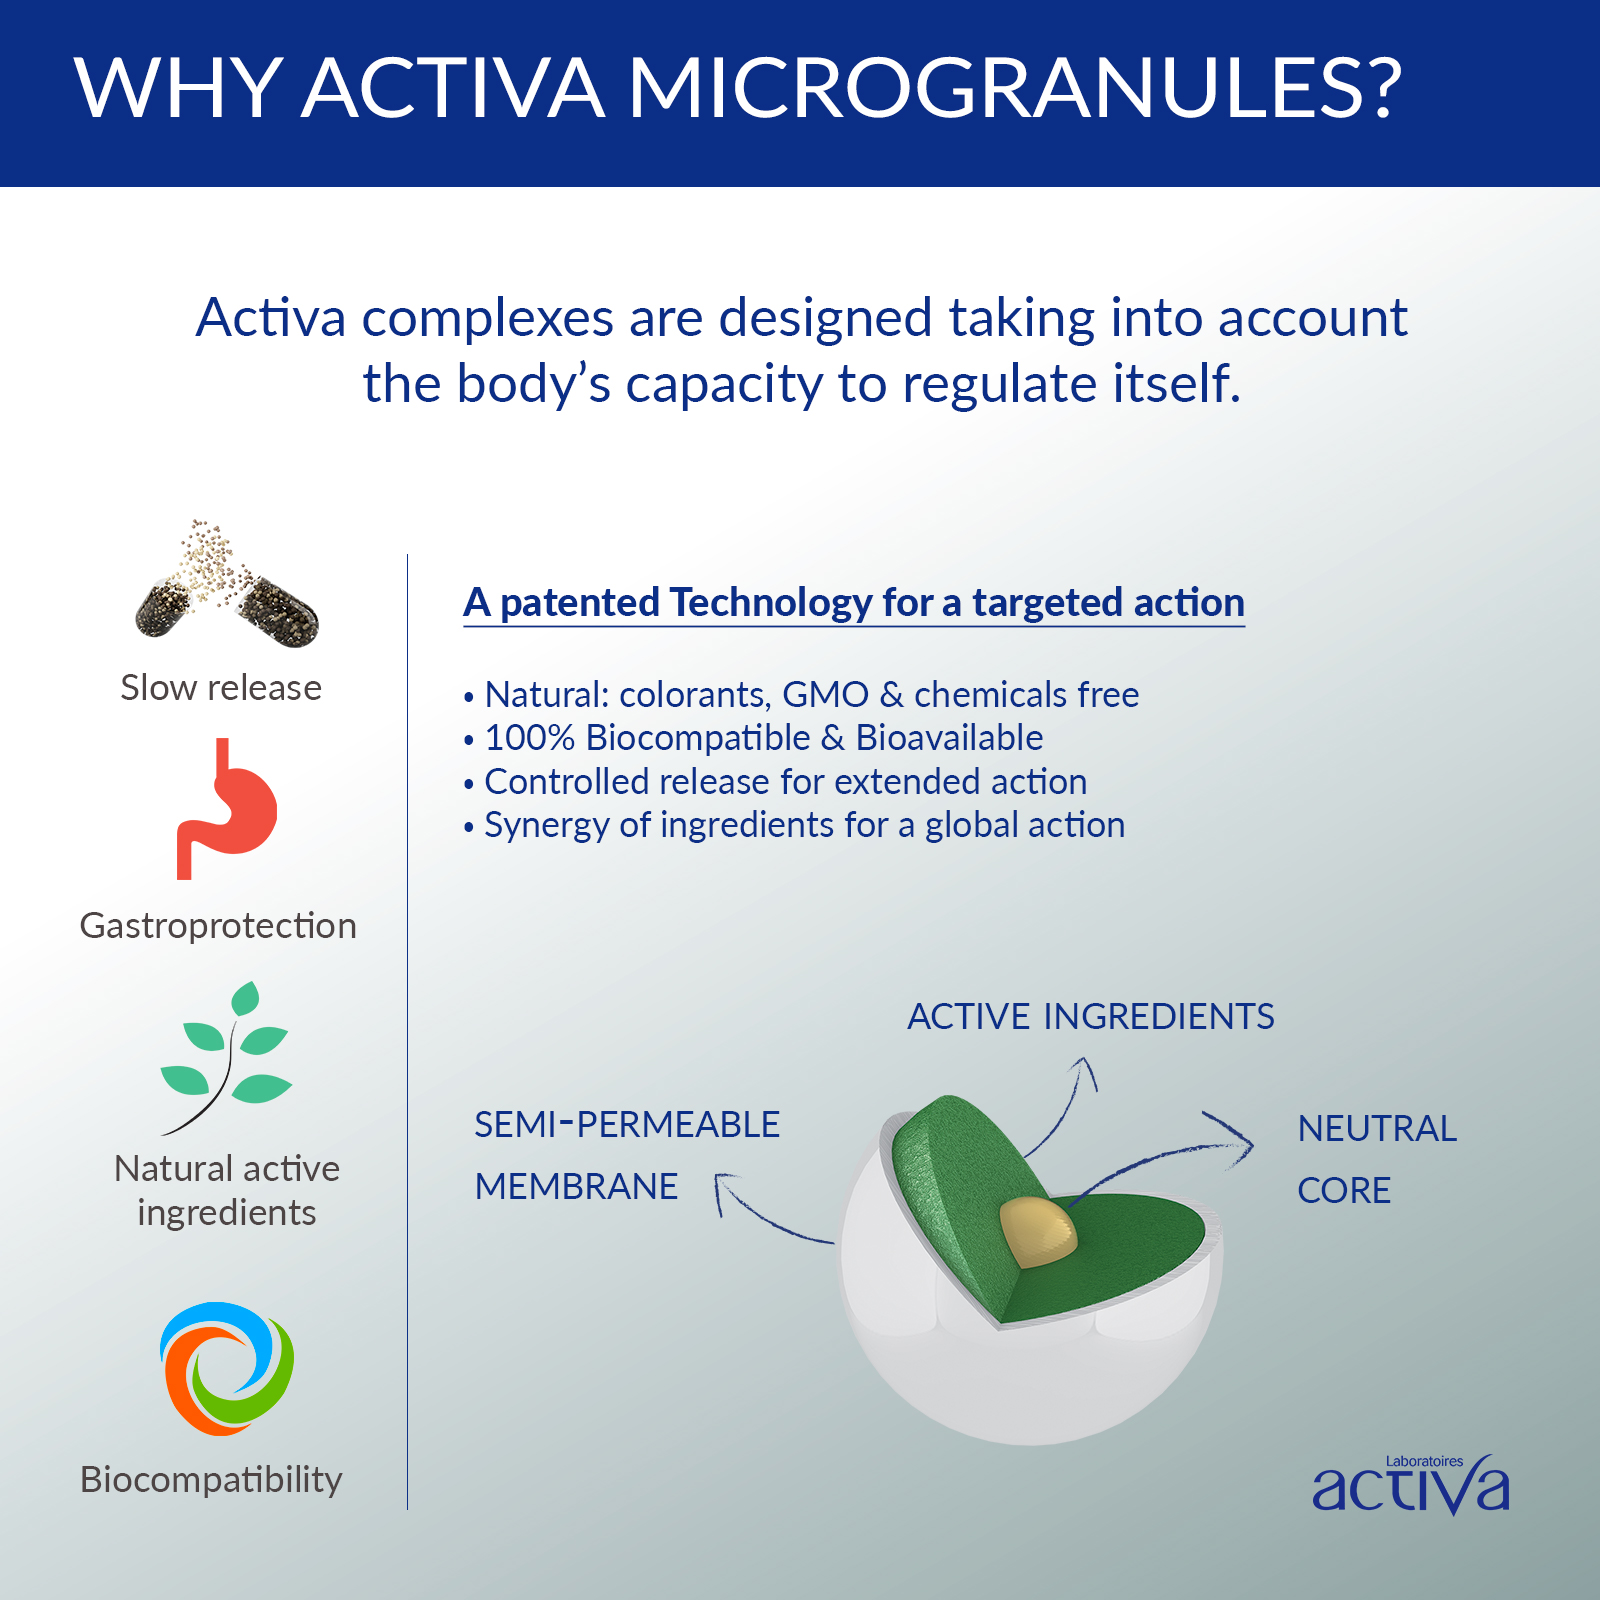 activa-well-being-memory-microgranule-natural-plant-picture-your-vitality-store-singapore-wellness-phytovitality-asia-supplements-fish-oil-omega-3